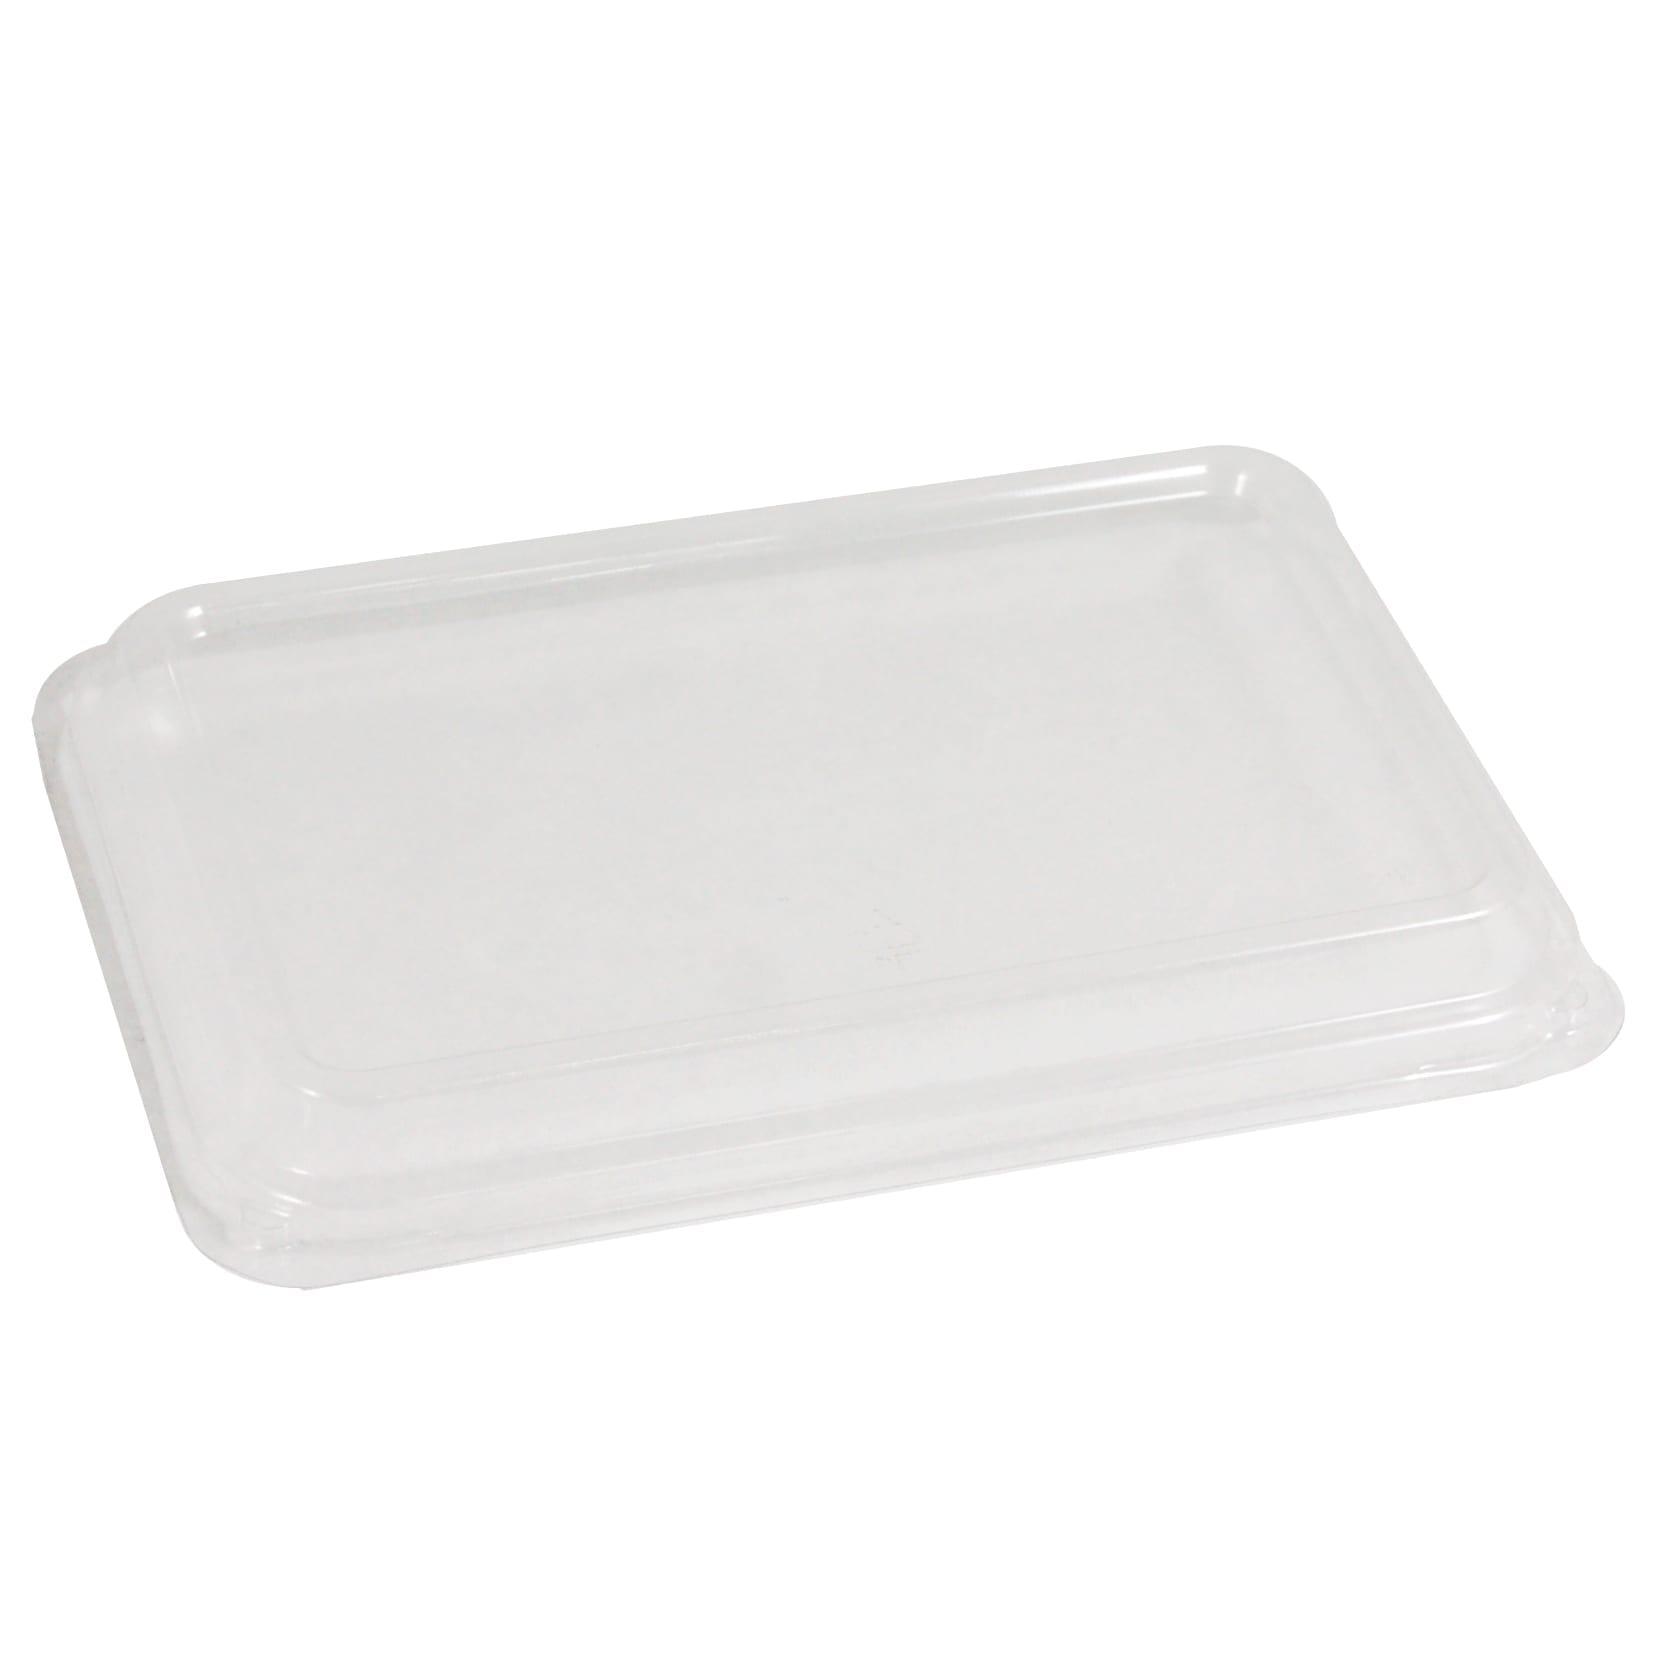 Rectangular PET lid